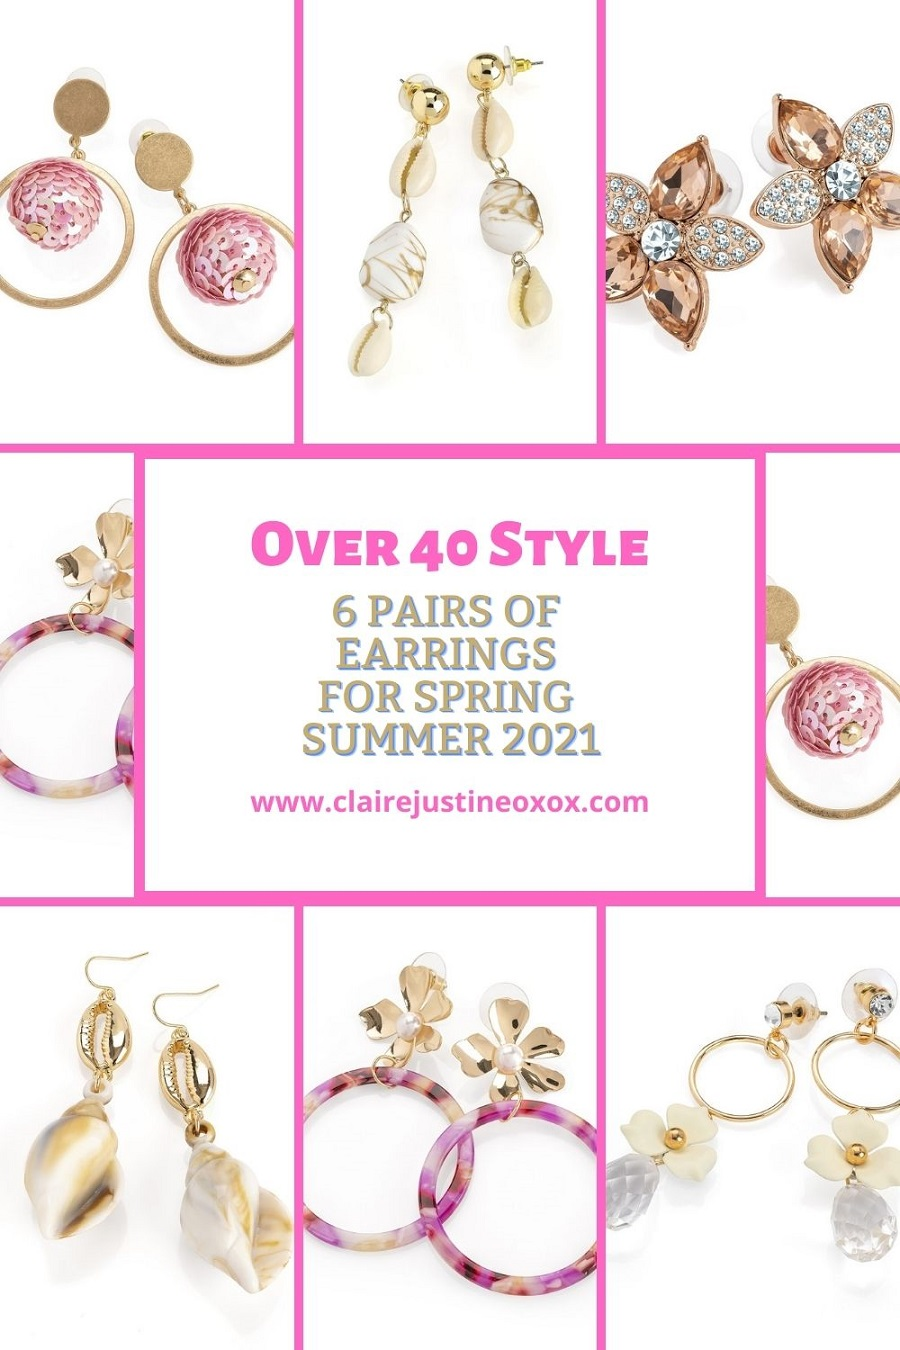 6 Pairs Of Earrings For Spring Summer 2021